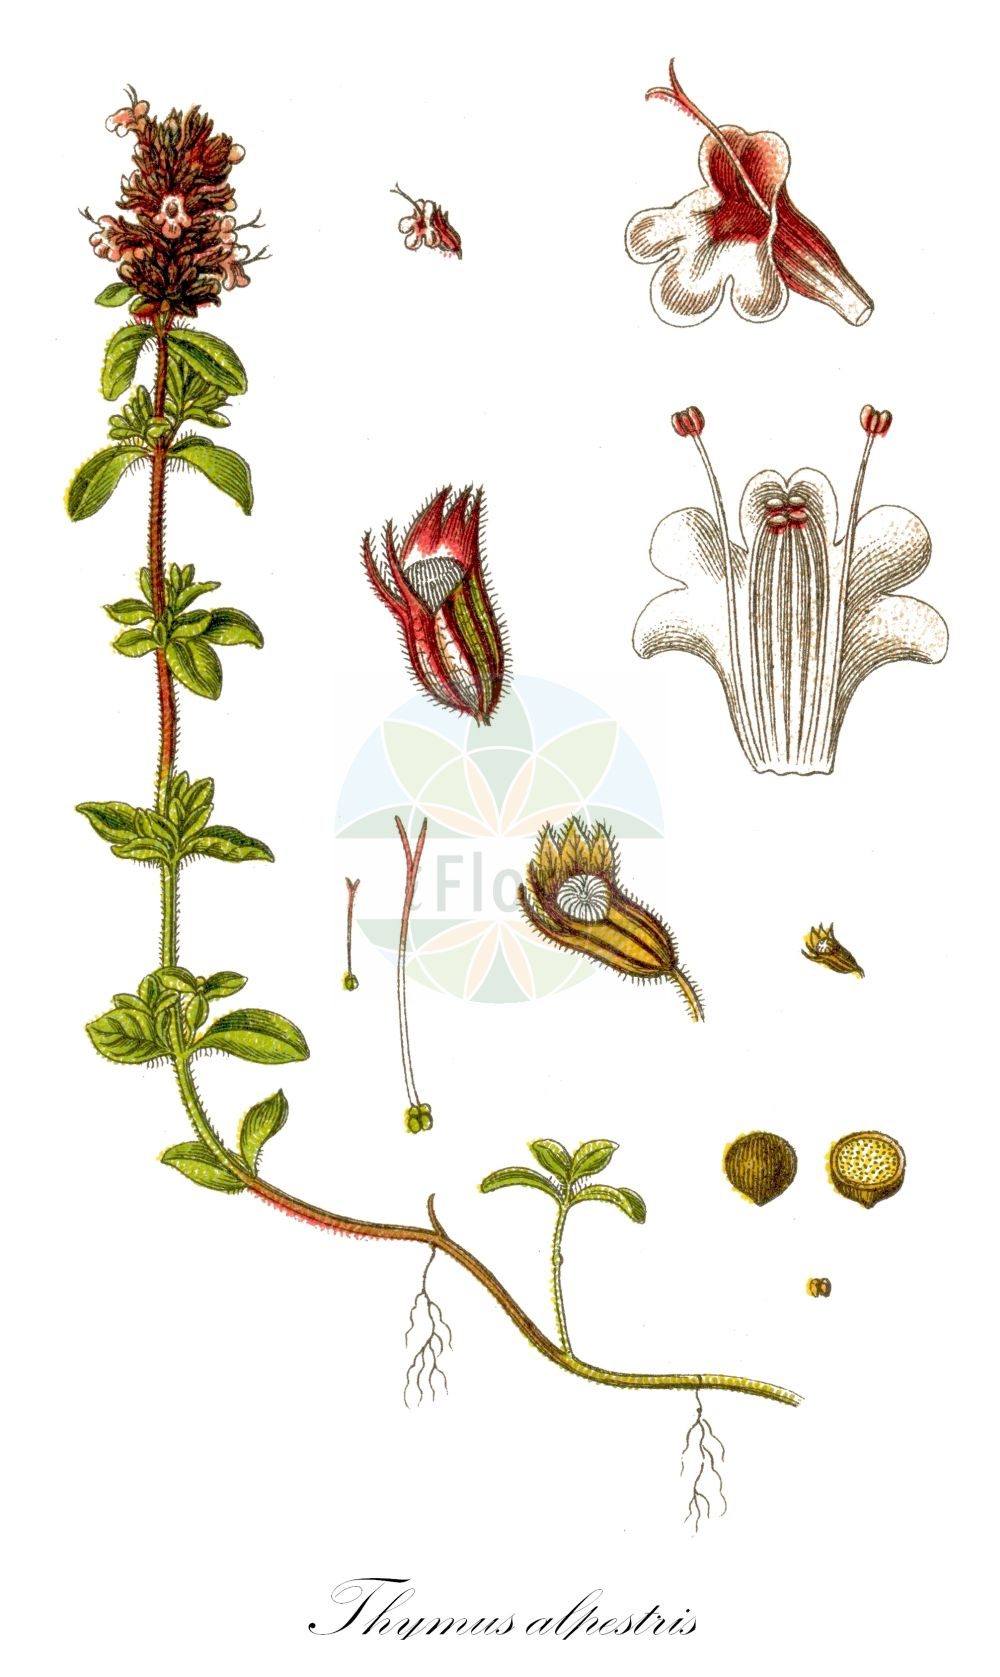 Historische Abbildung von Thymus alpestris (Hochgebirgs-Thymian - Wild Thyme). Das Bild zeigt Blatt, Bluete, Frucht und Same. ---- Historical Drawing of Thymus alpestris (Hochgebirgs-Thymian - Wild Thyme).The image is showing leaf, flower, fruit and seed.(Thymus alpestris,Hochgebirgs-Thymian,Wild Thyme,Thymus subalpestris,Alpine Thyme,Thymus,Thymian,Thyme,Lamiaceae,Lippenbluetengewaechse;Lippenbluetler,Nettle family,Blatt,Bluete,Frucht,Same,leaf,flower,fruit,seed,Sturm (1796f))